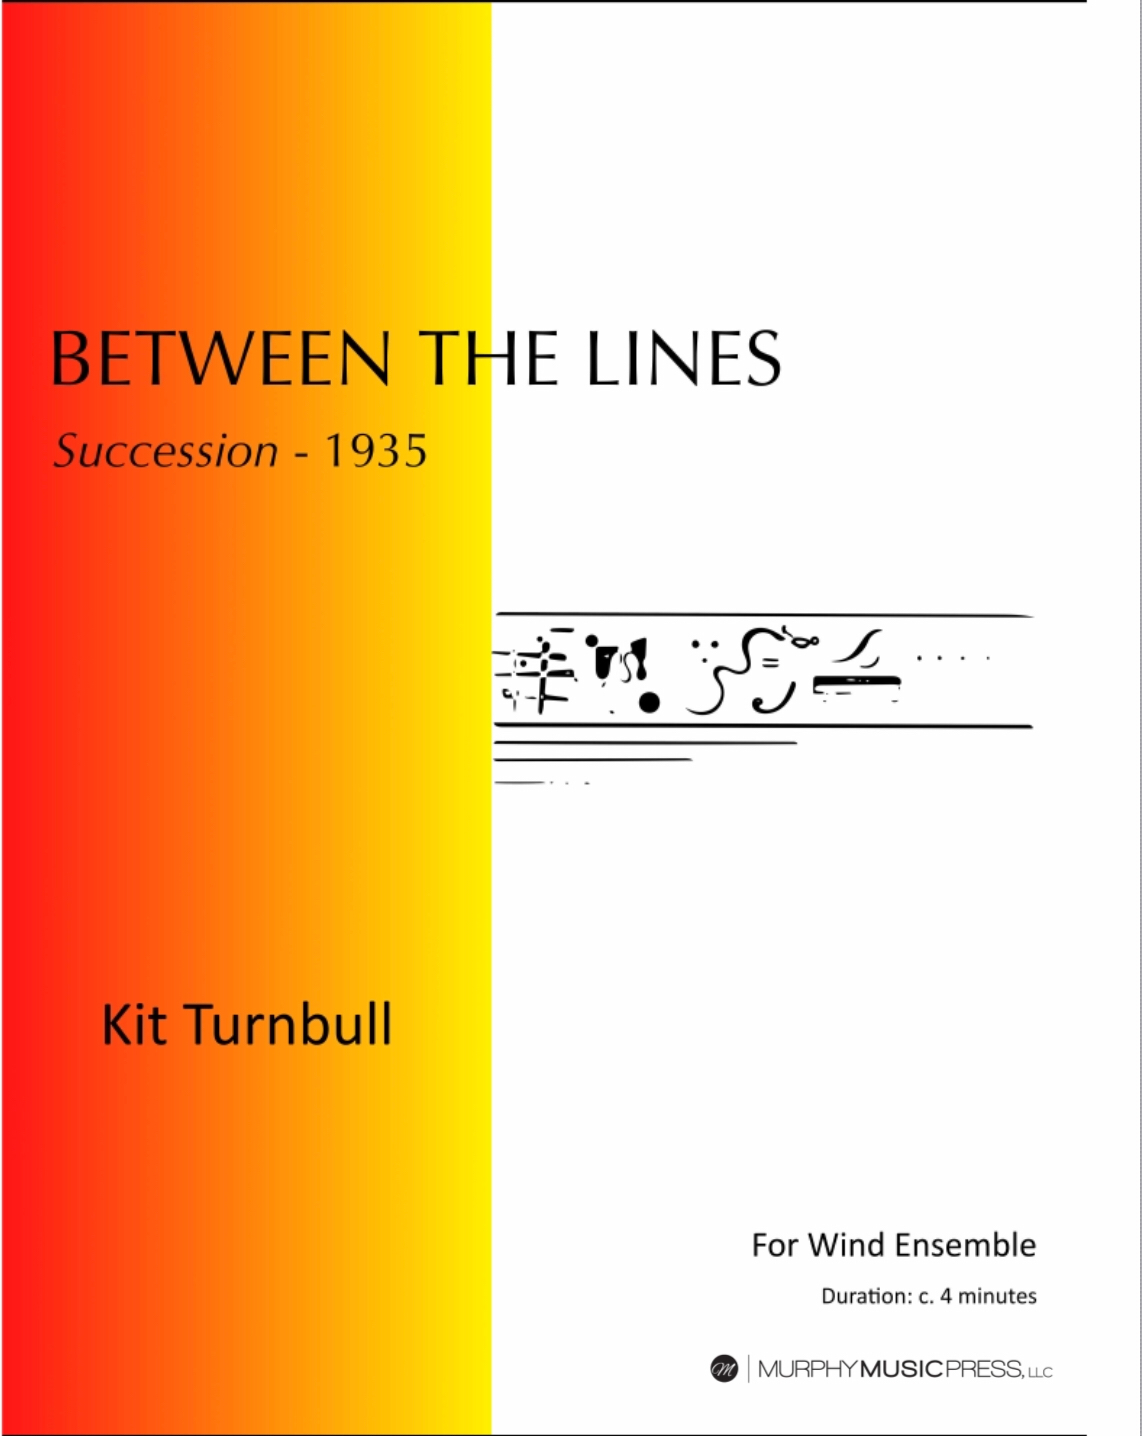 Between The Lines  by Kit Turnbull